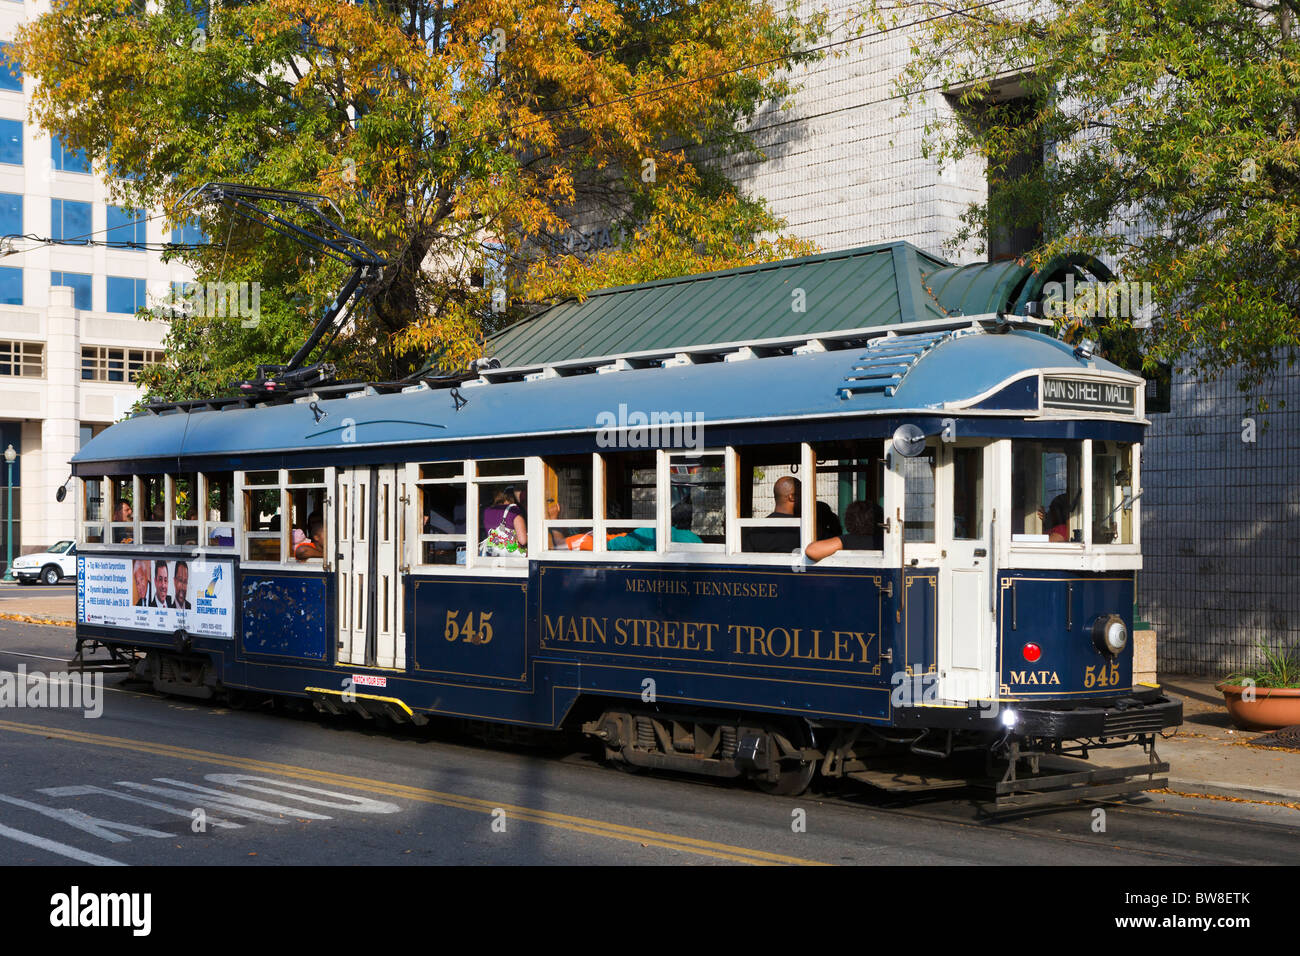 Main Street Trolley on Main Street, Memphis, Tennessee, USA - Stock Image